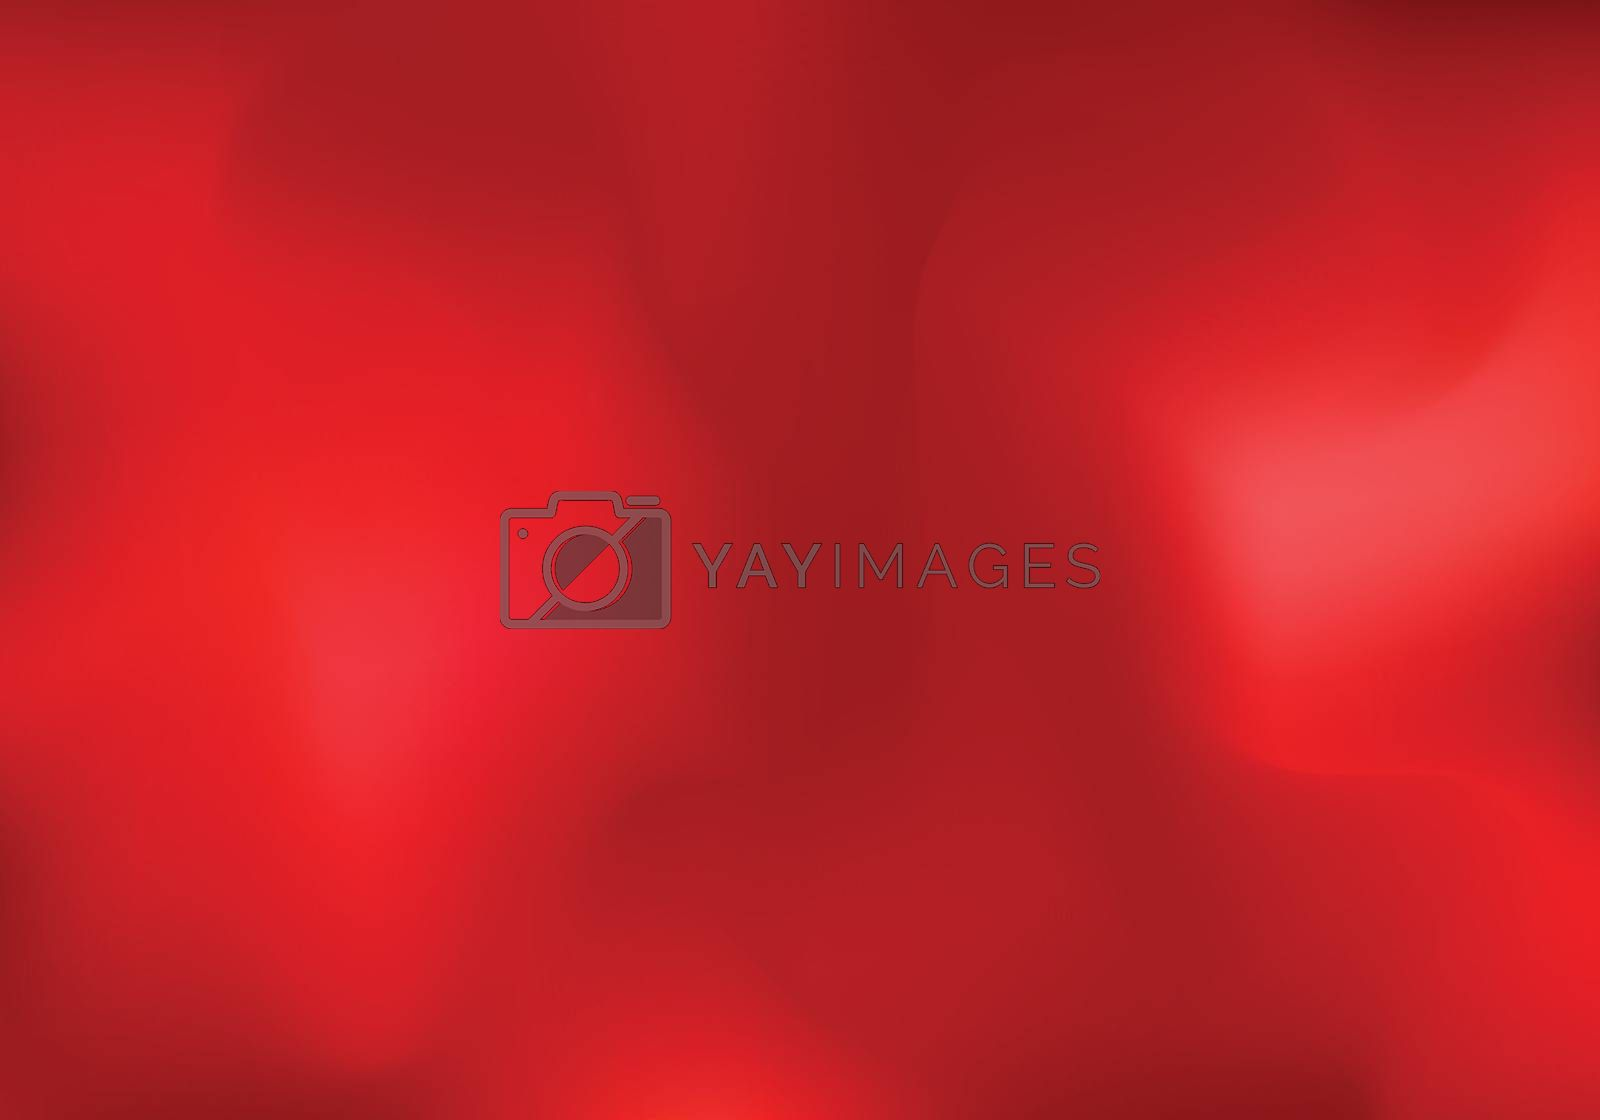 Abstract red cloud or smoke background. Blurred gradient horizontal template You can use for wallpaper, banner web, presentation, brochure, poster, ad, etc. Vector illustration